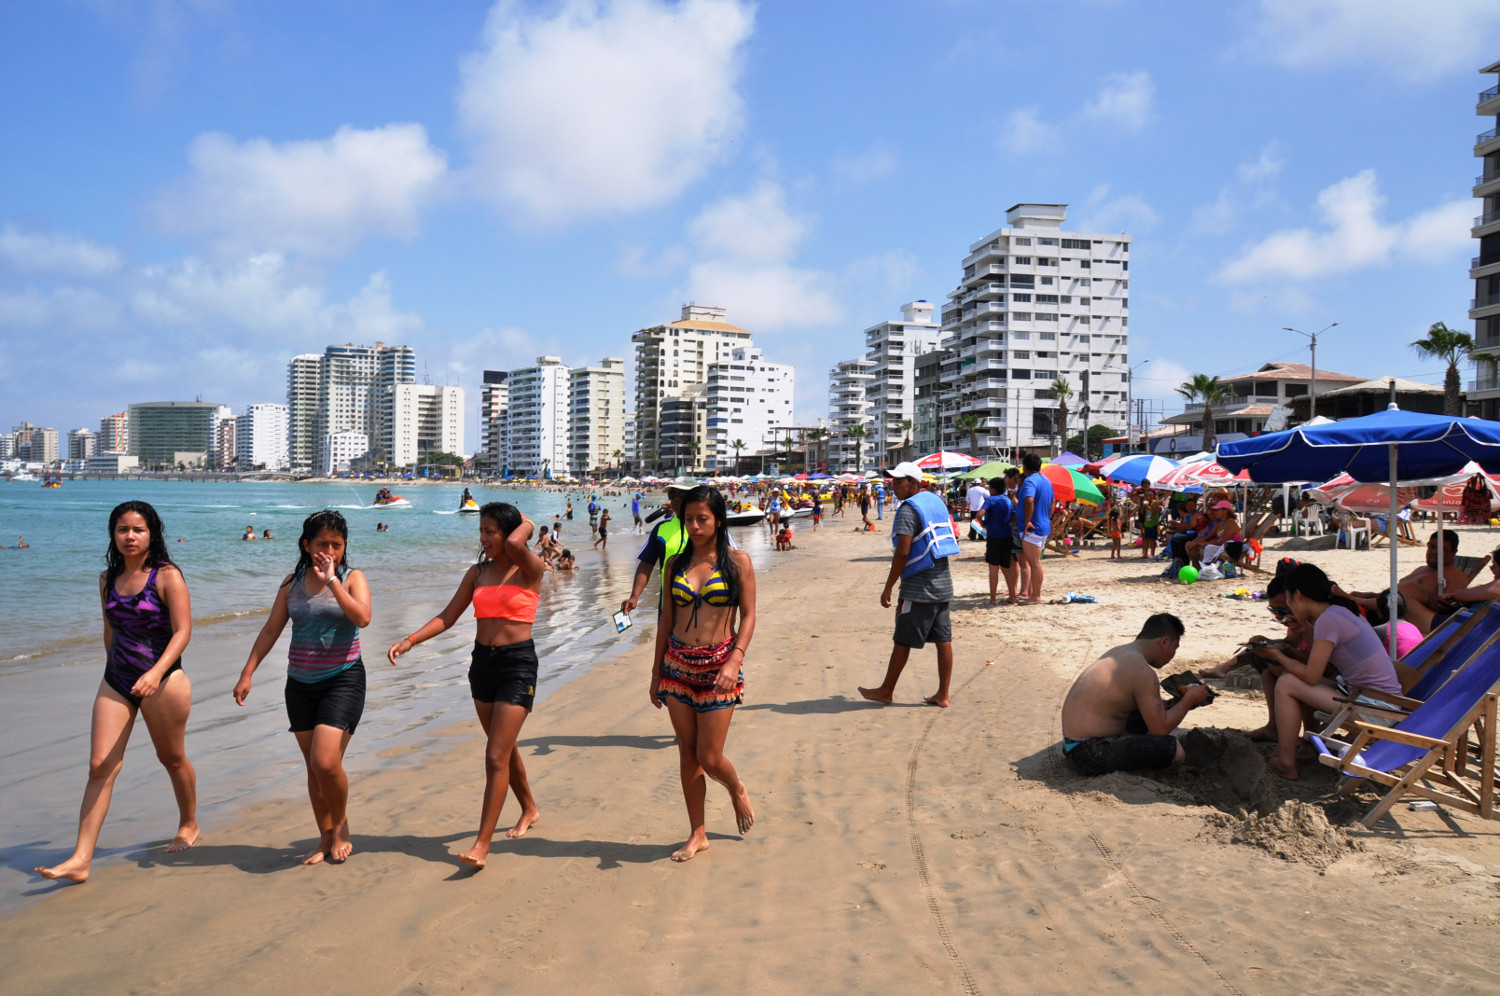 Die warme Seite von Ecuador: Strandleben in Guayaquil | The hot side of Ecuador: beach life in Guayaquil